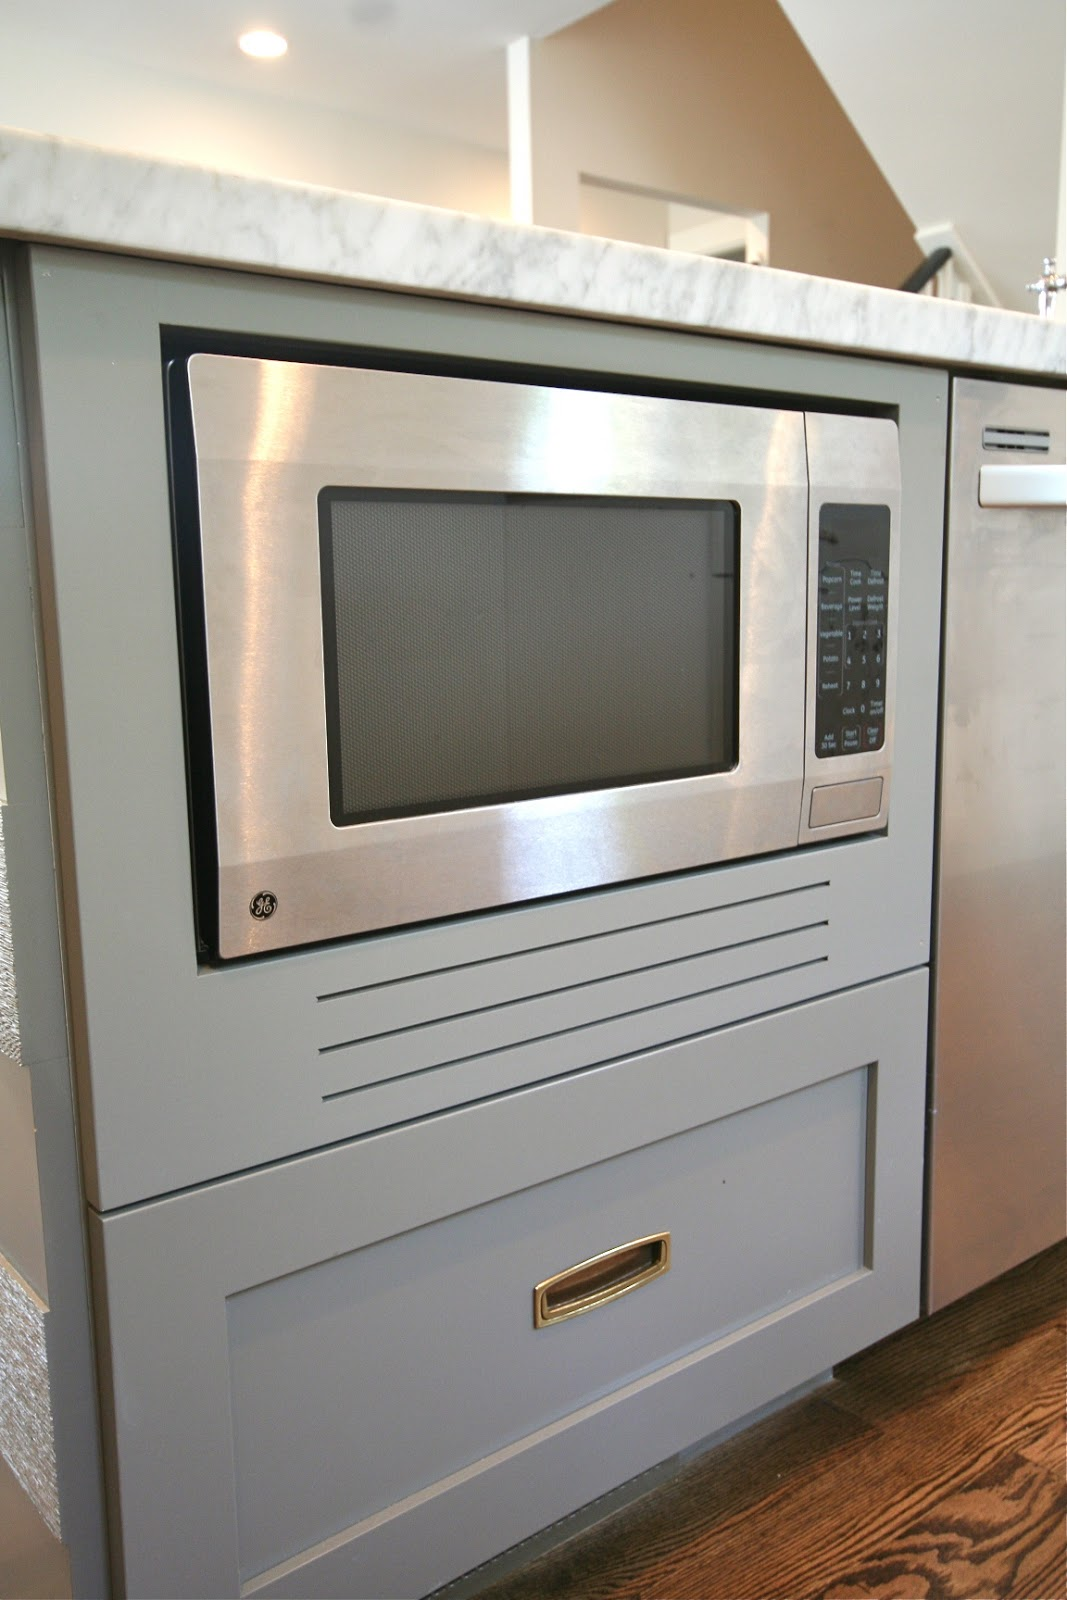 Countertop Microwave To Built In : design dump: how to fake a built-in microwave